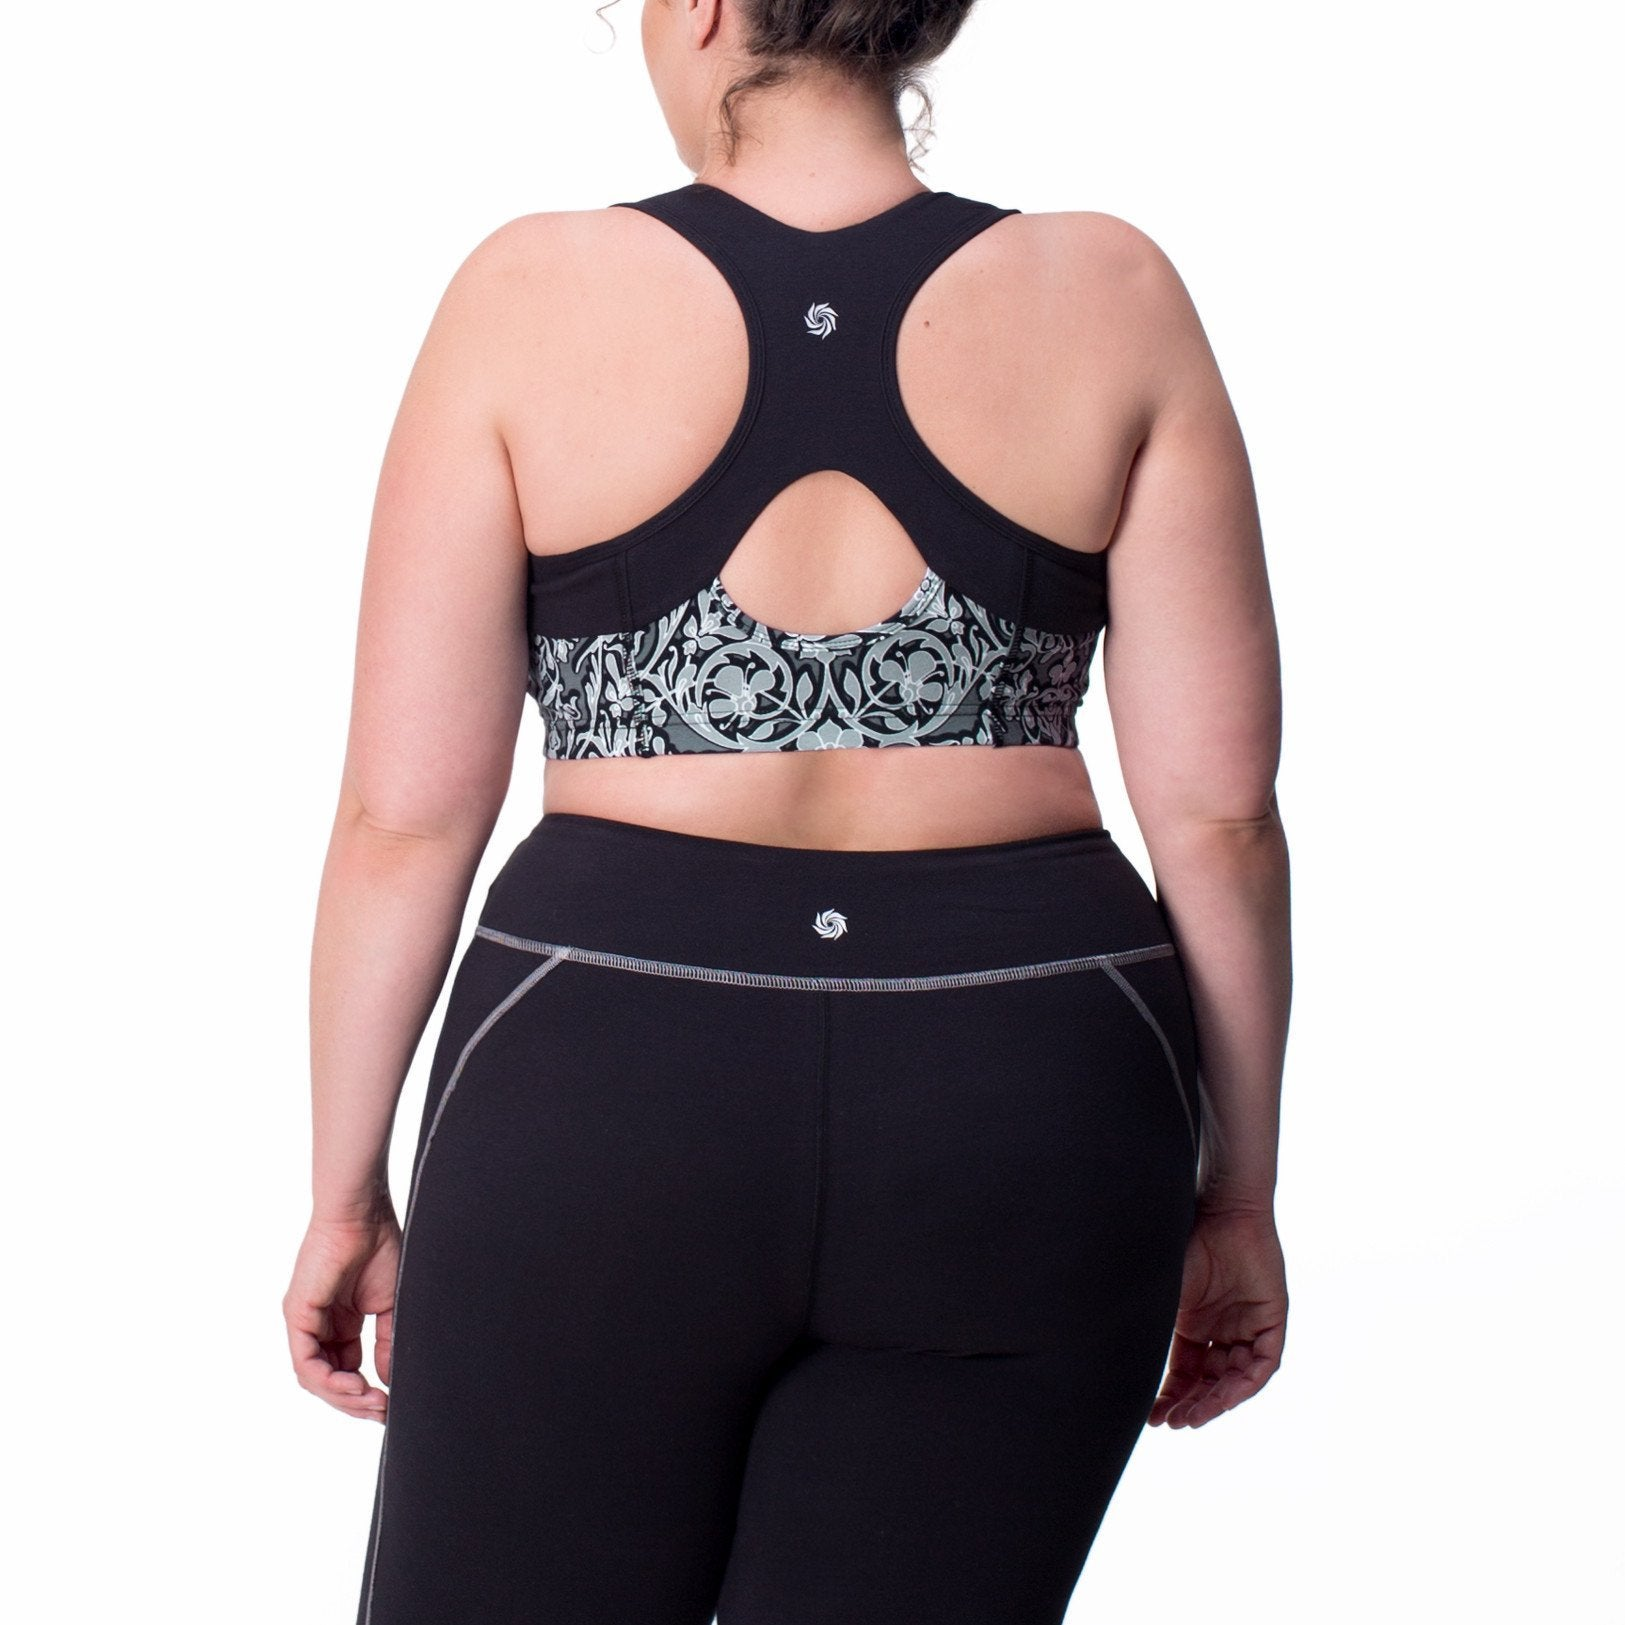 Jenna Print Bra - Rainbeau Curves, , activewear, athleisure, fitness, workout, gym, performance, womens, ladies, plus size, curvy, full figured, spandex, cotton, polyester - 1